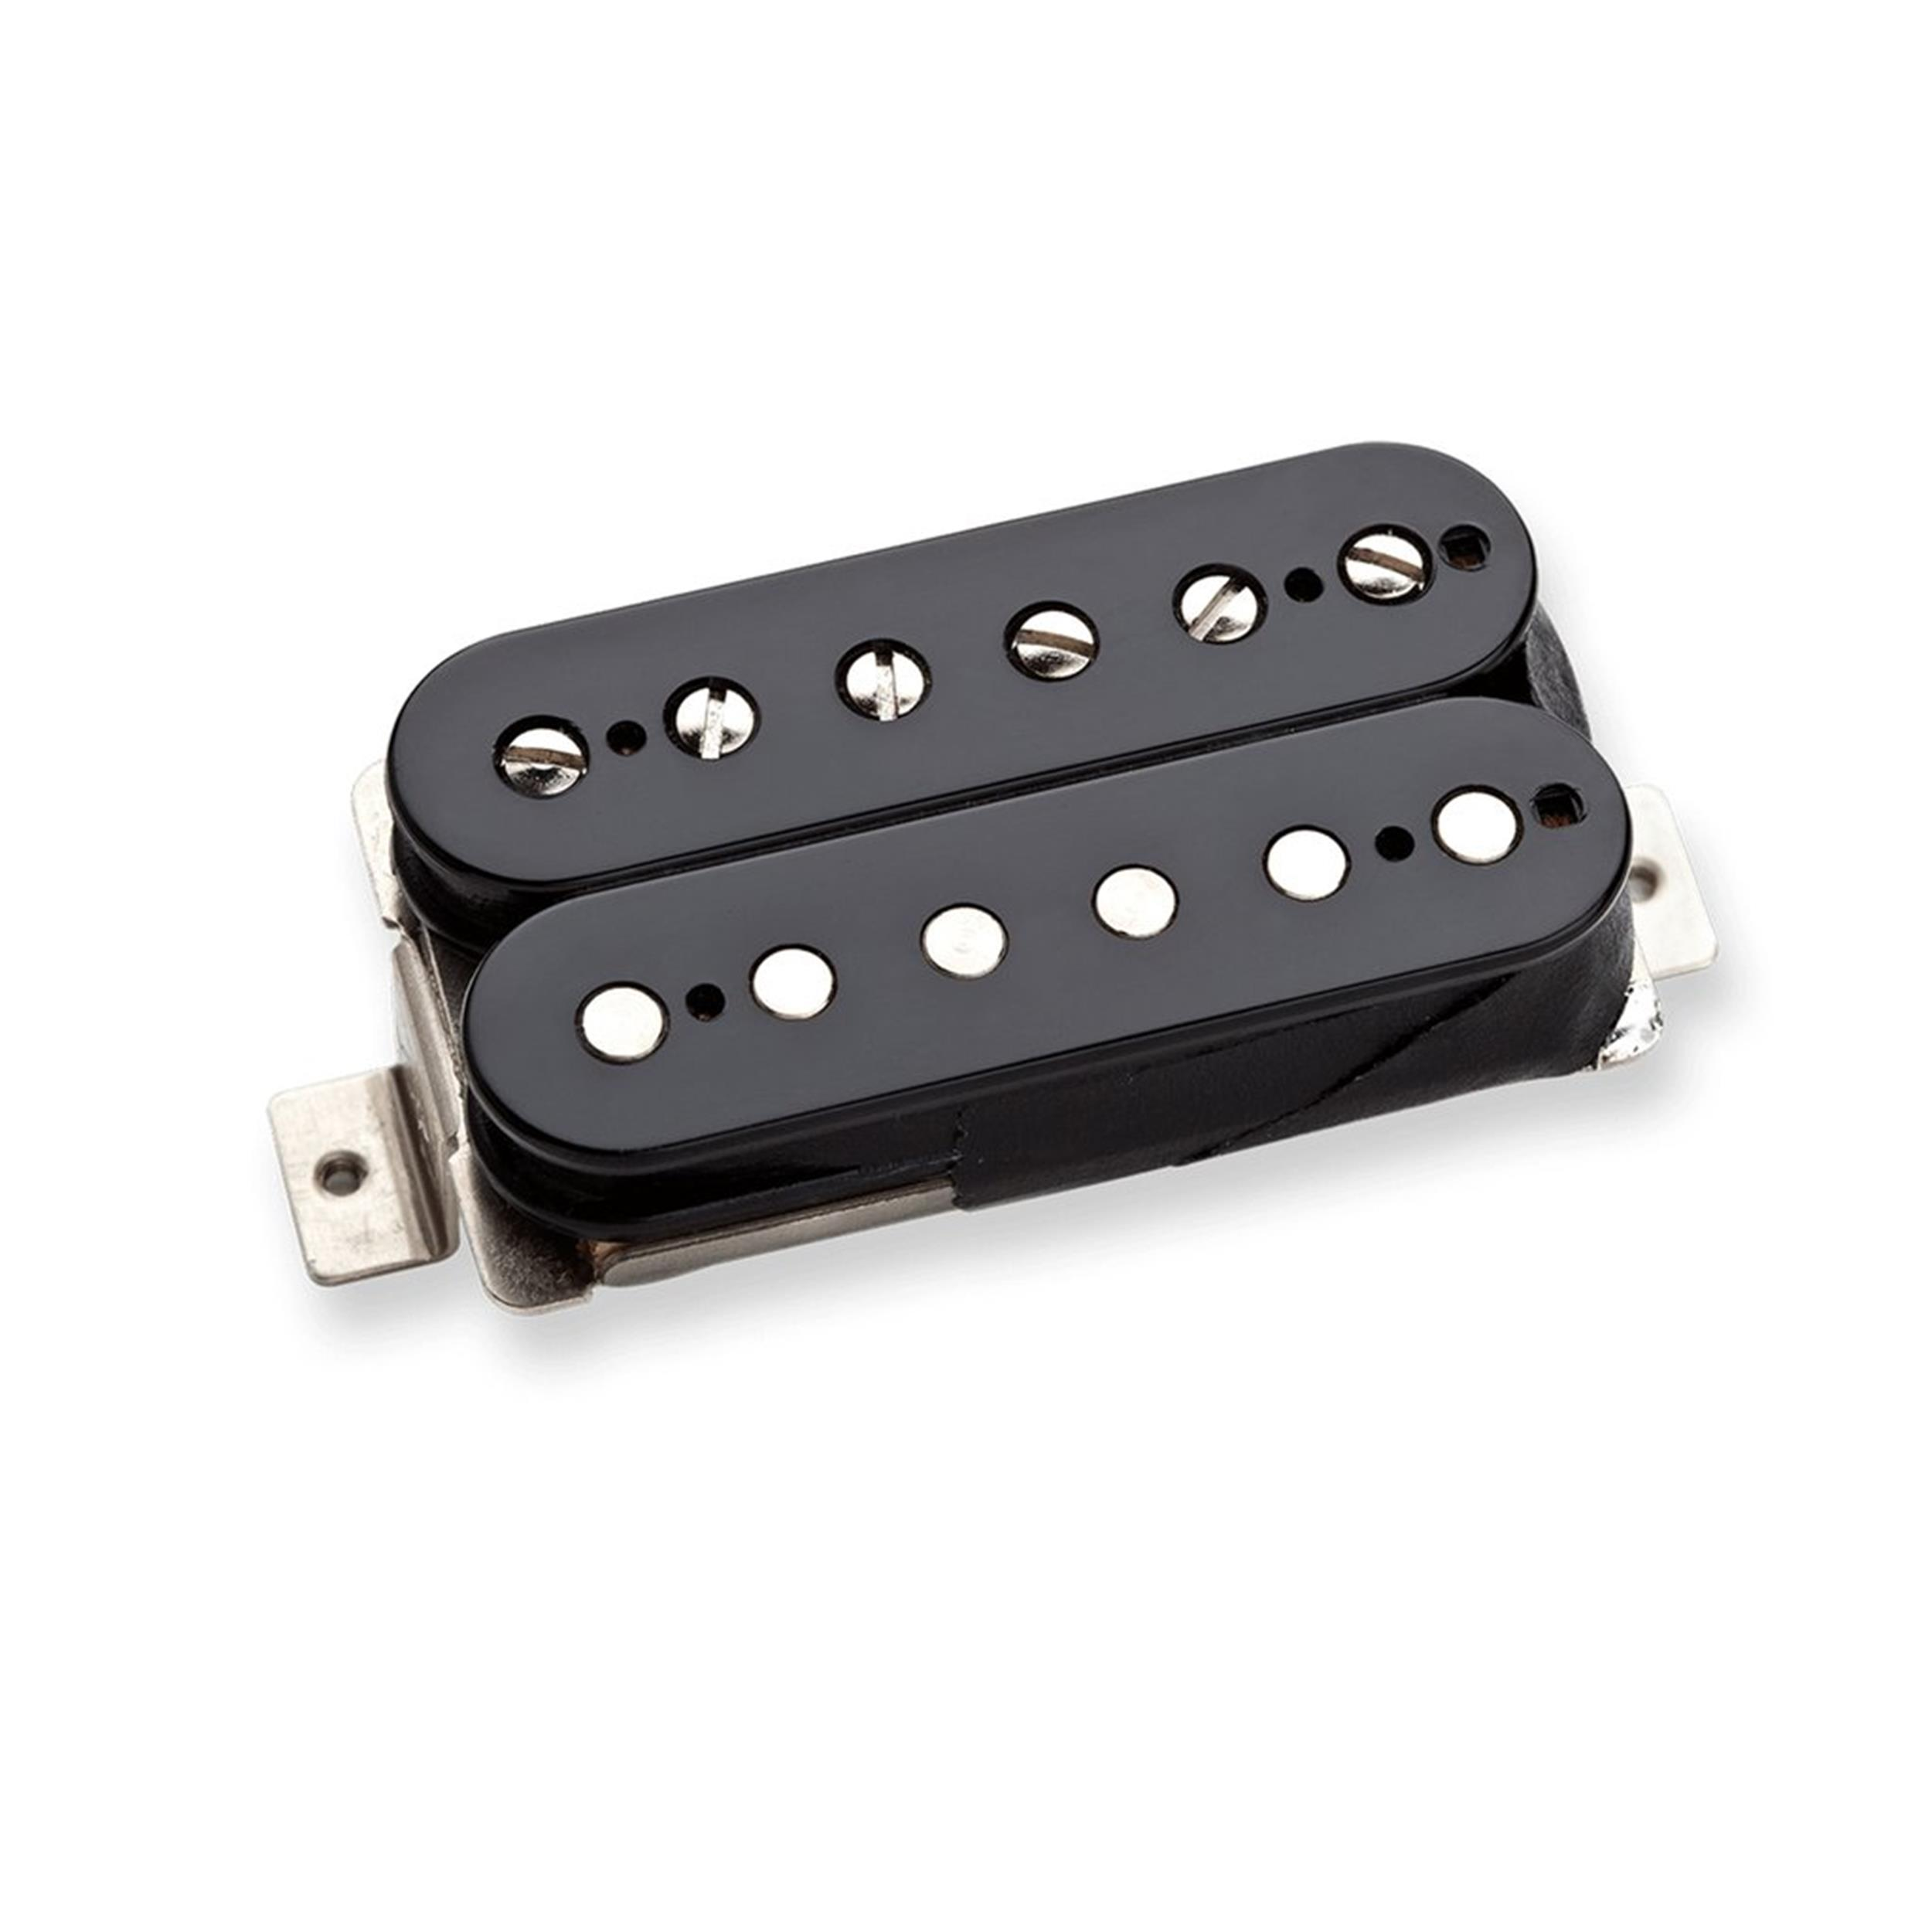 SEYMOUR-DUNCAN SH 1 B 59 MODEL BLACK BRIDGE 11101-05-B